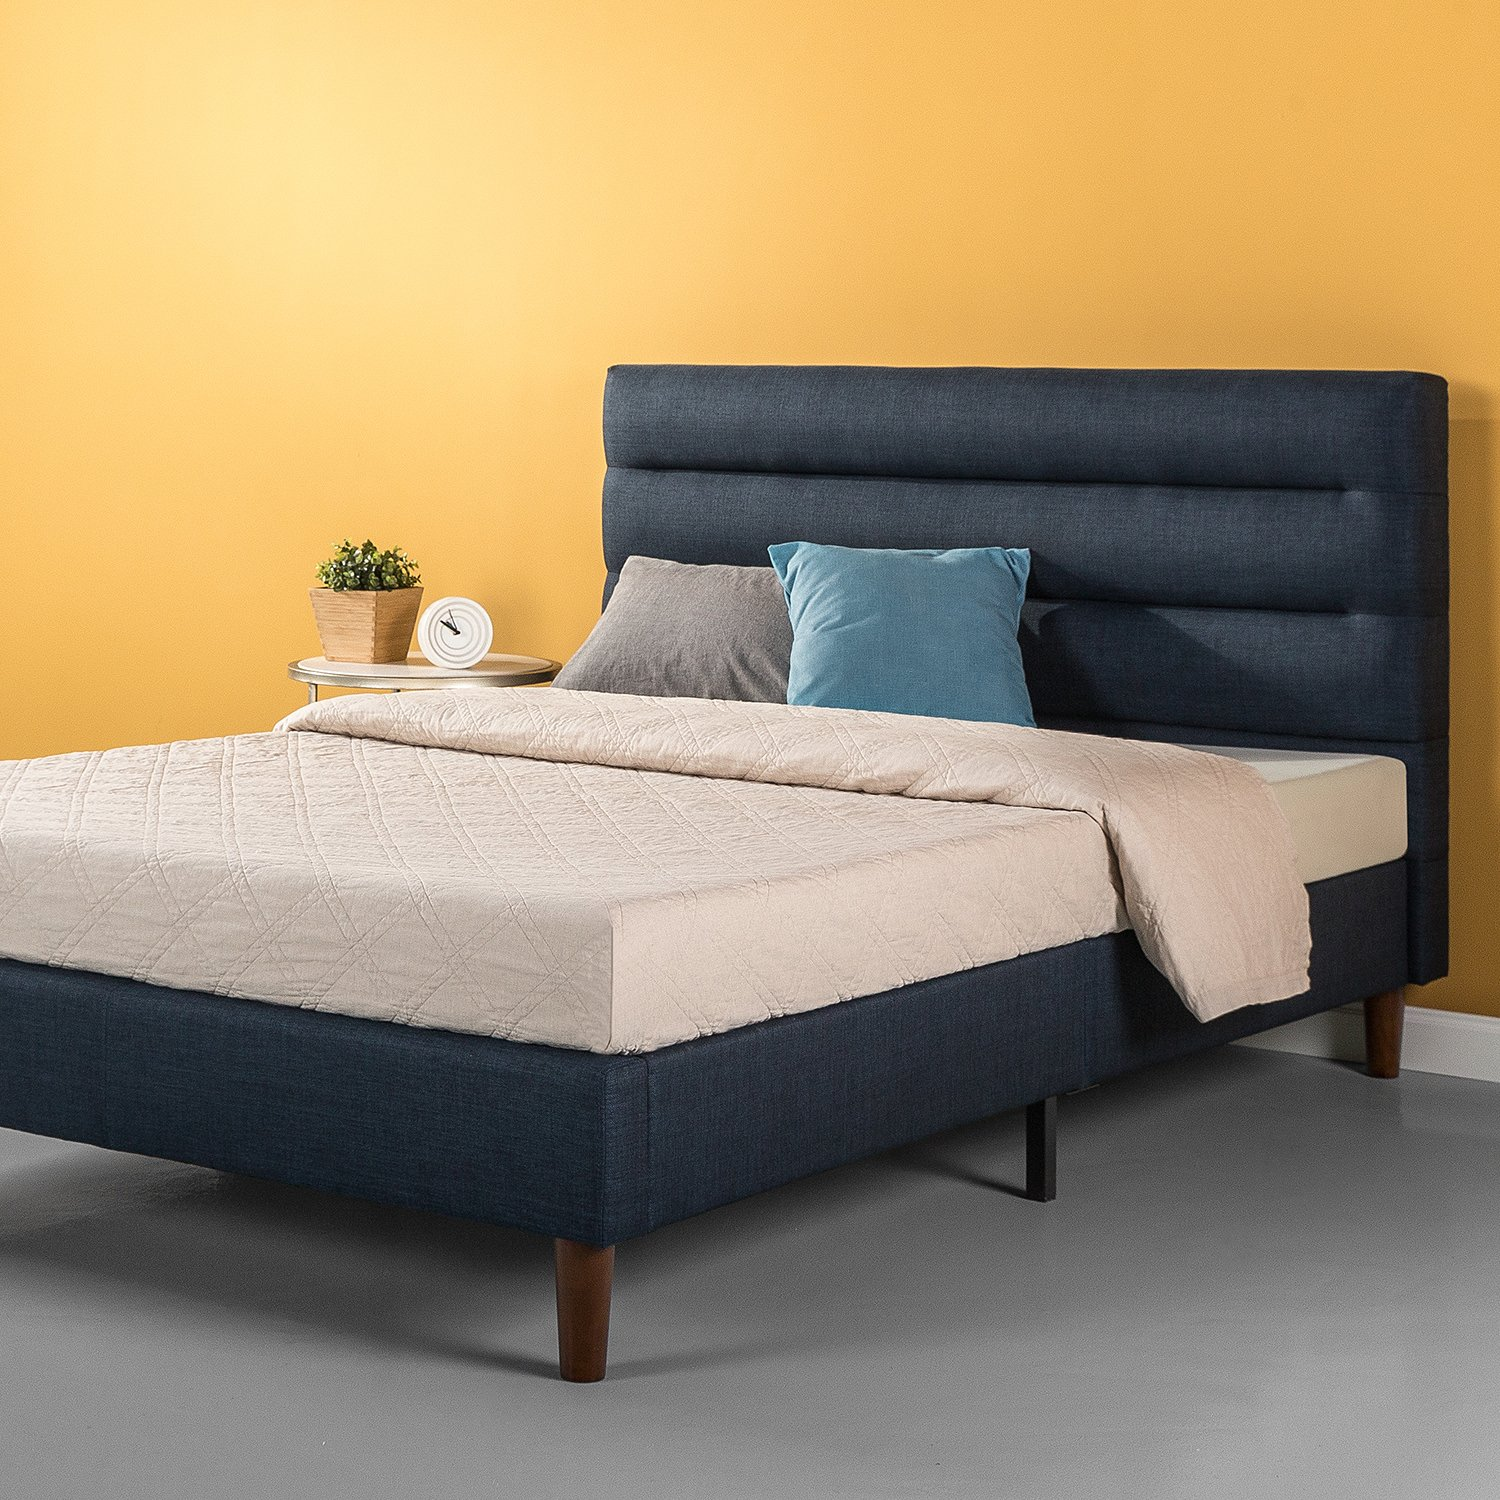 Zinus Upholstered Horizontally Cushioned Platform Bed / Mattress Foundation / Easy Assembly / Strong Wood Slat Support / Navy, Queen by Zinus